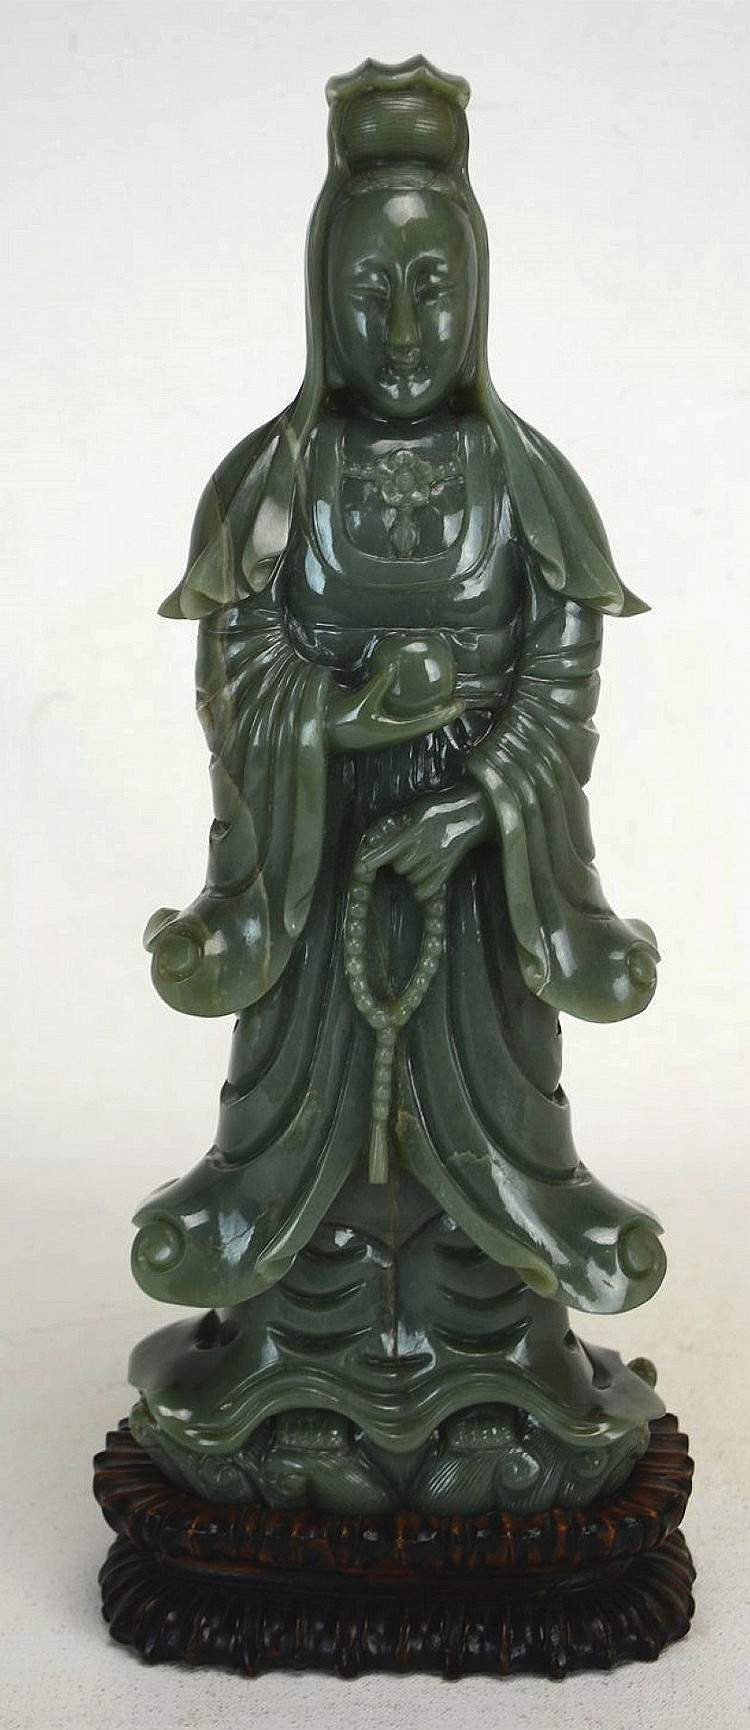 18th C. Chinese Green Jade Carving of Guan Yin